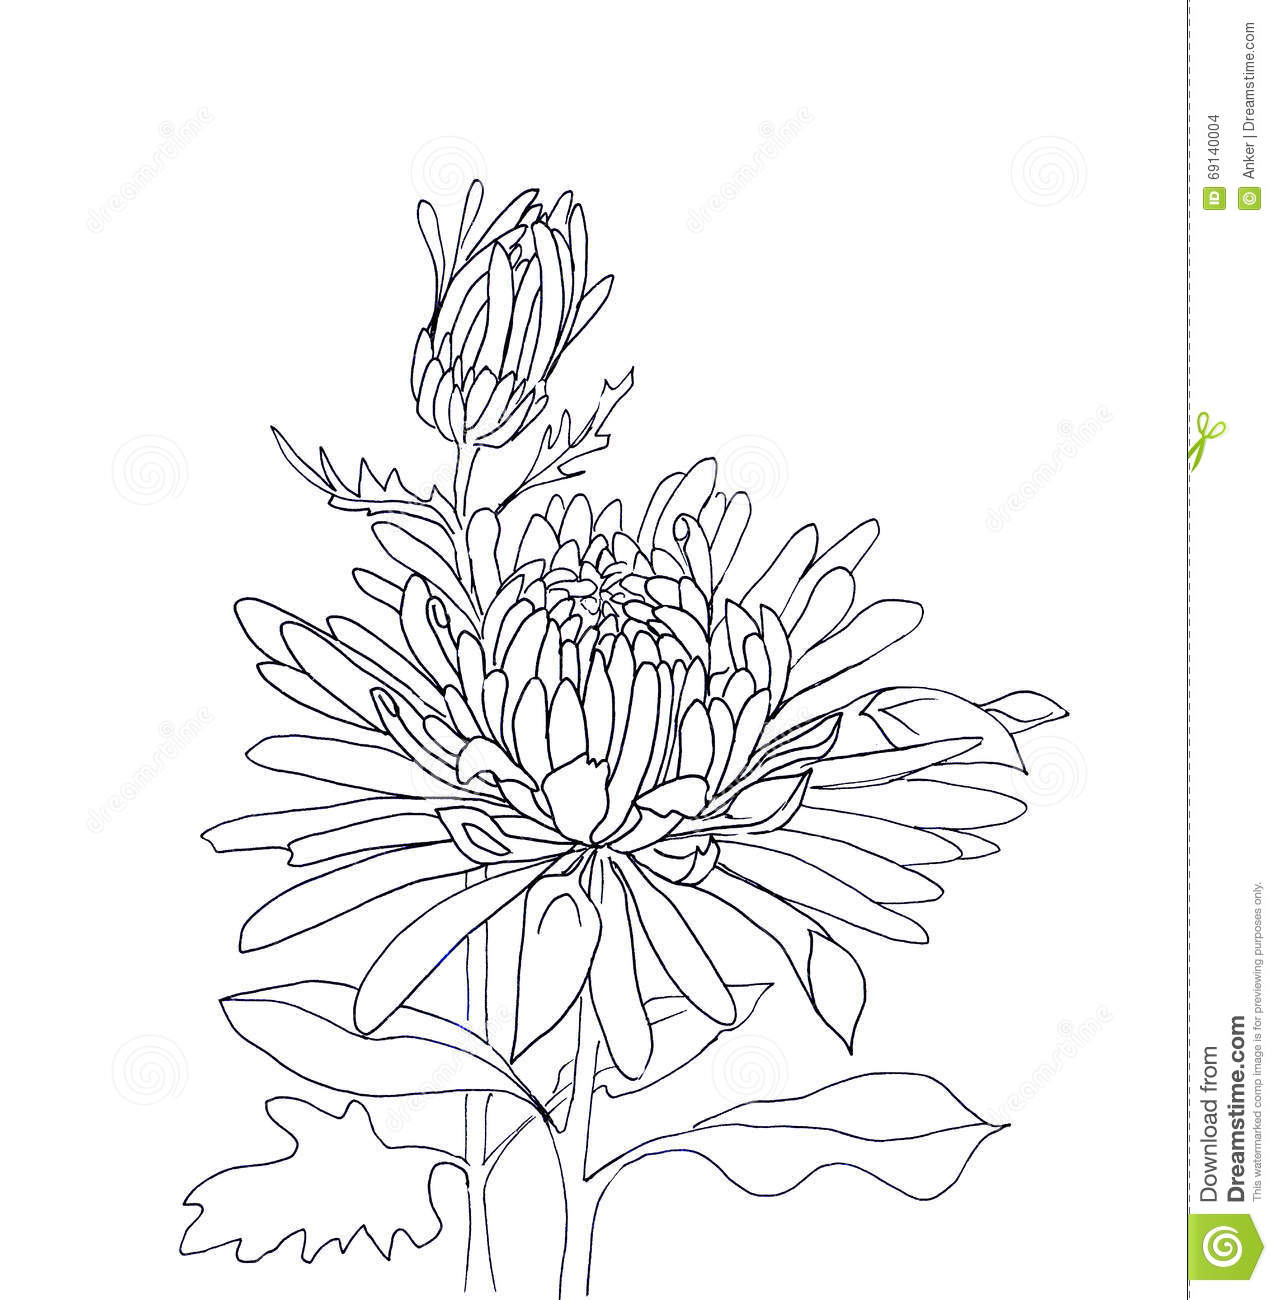 flower hand drawn aster stock illustration  image, Beautiful flower